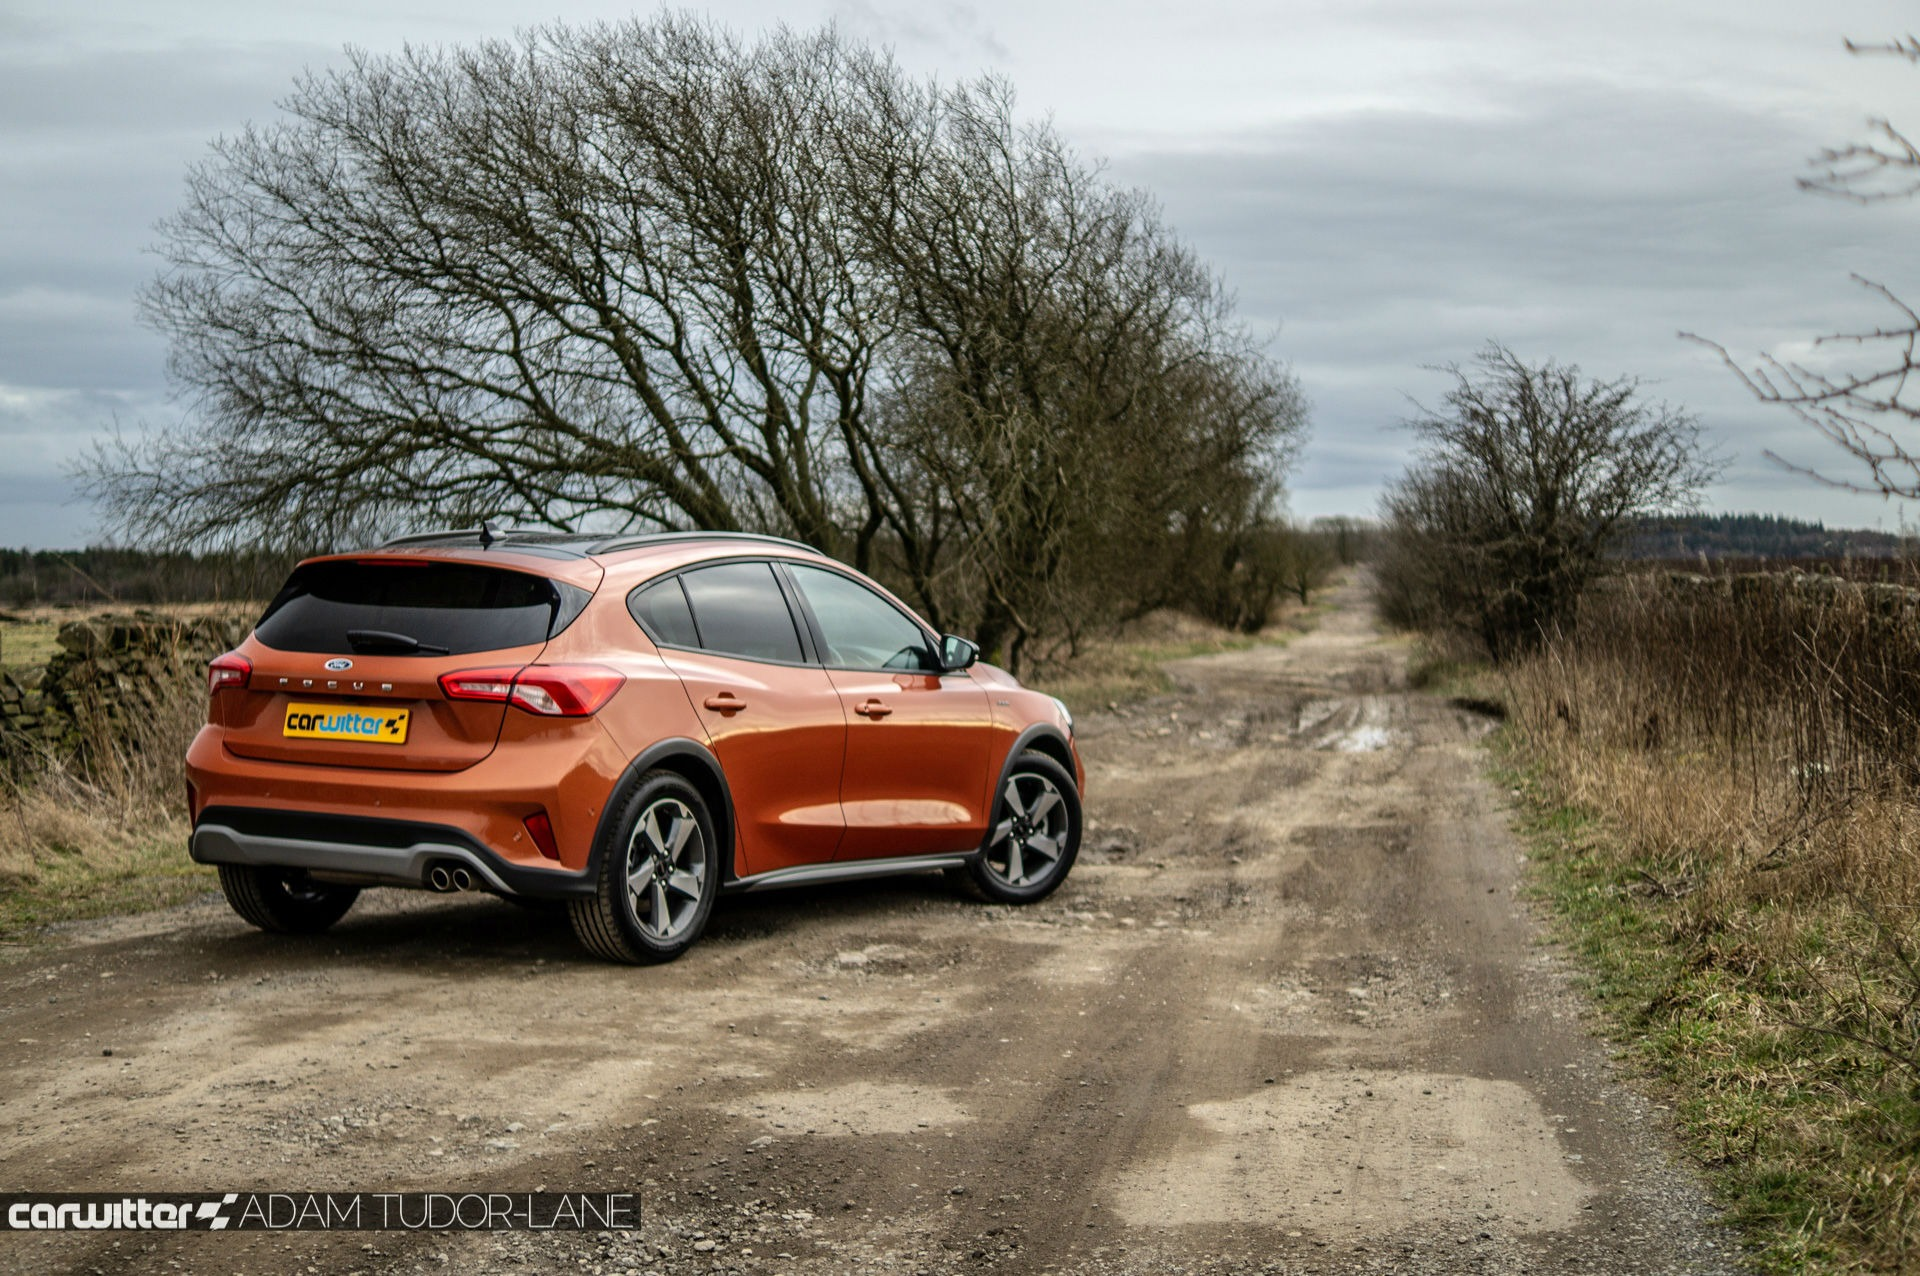 2019 Ford Focus Active Review Rear Angle Scene carwitter - Top 10 Best Selling Cars in Ireland 2020 - 2019 Ford Focus Active Review - Rear Angle Scene - carwitter